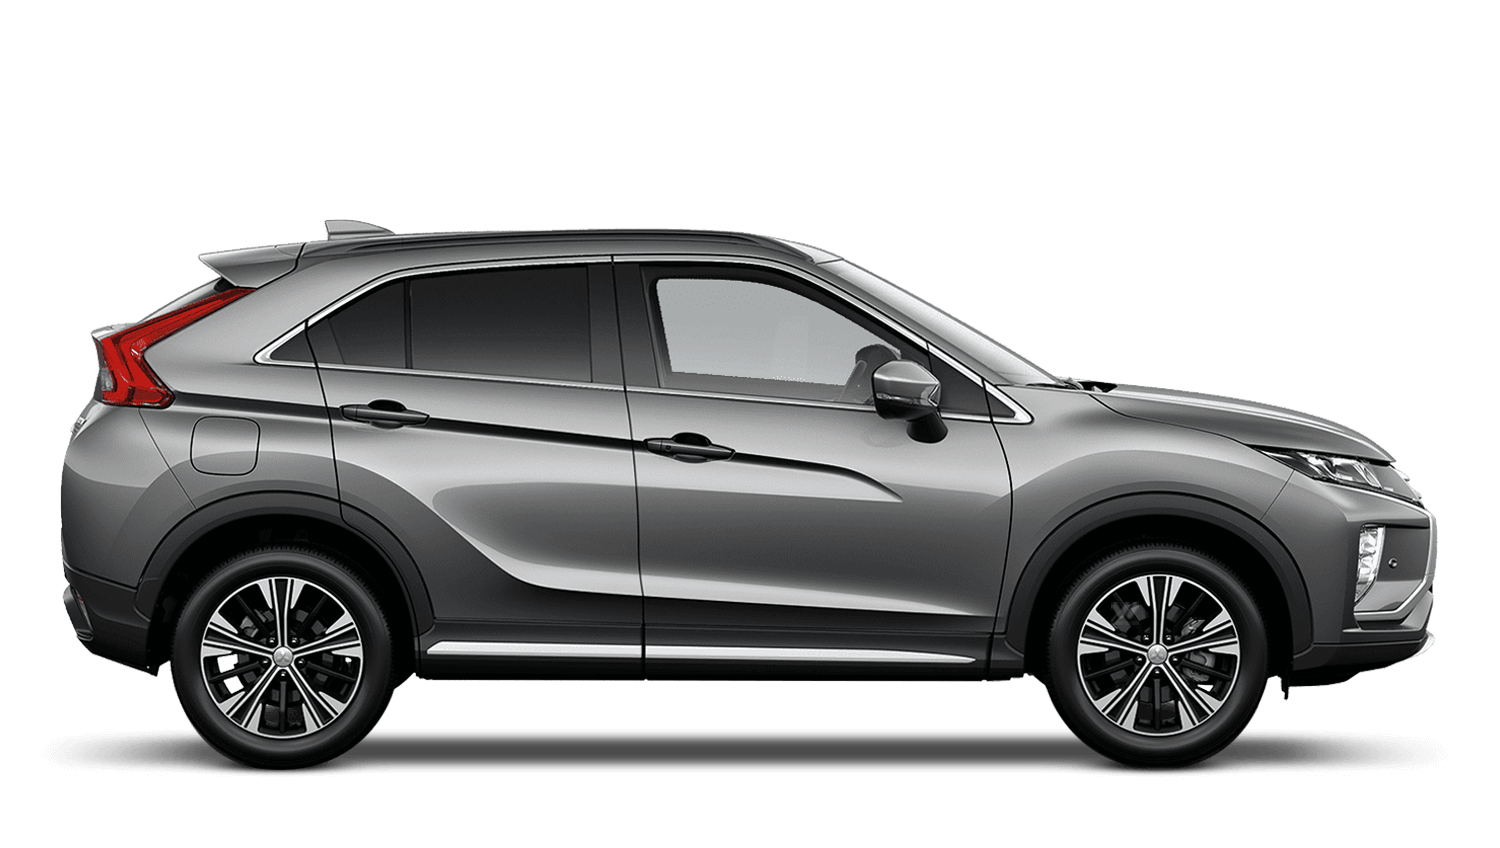 Atlantic Grey Mitsubishi Eclipse Cross